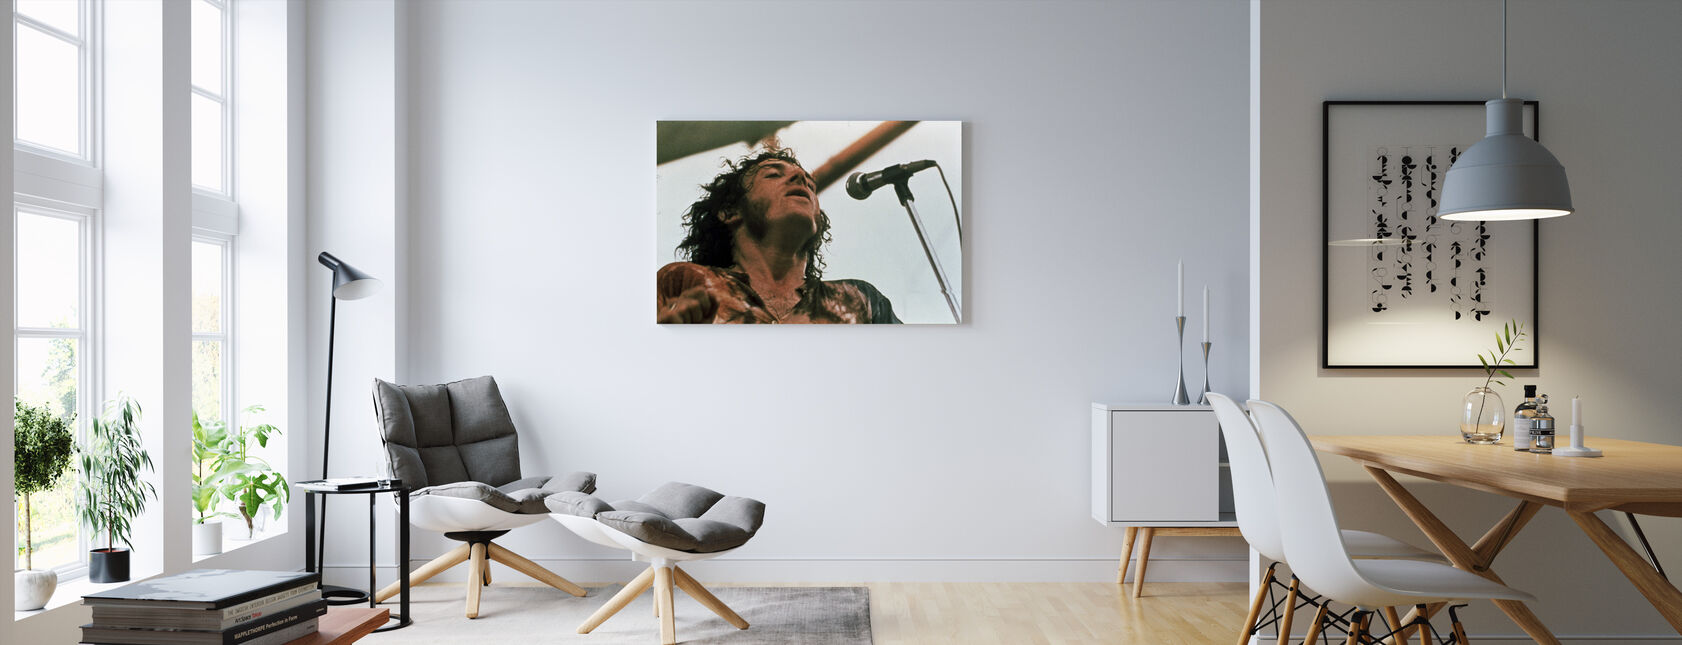 Woodstock Stage 1970 - Canvas print - Living Room